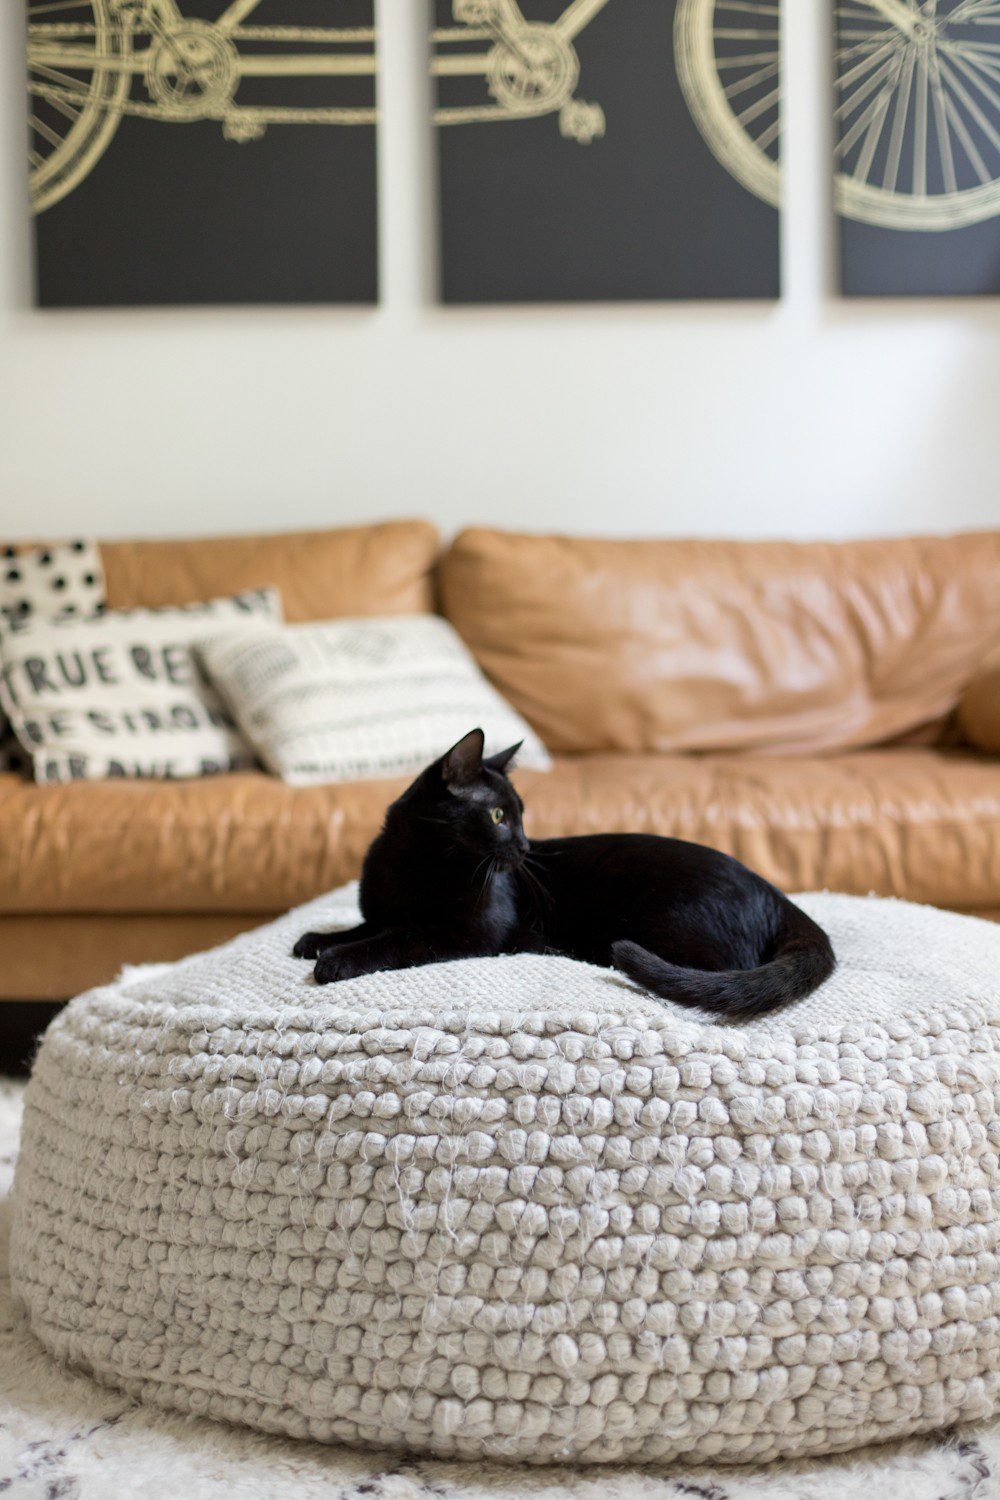 5 Essential Things for the Best Kitten Care from top US lifestyle blogger Tabitha Blue of Fresh Mommy Blog! I hate cat litter! Here's why the Litter Robot is amazing and our new kitten care best friend.   How to Train Your Cat to Use the Litter Box by popular Tampa life and style blog, Fresh Mommy: image of a black cat sitting on a ottoman.